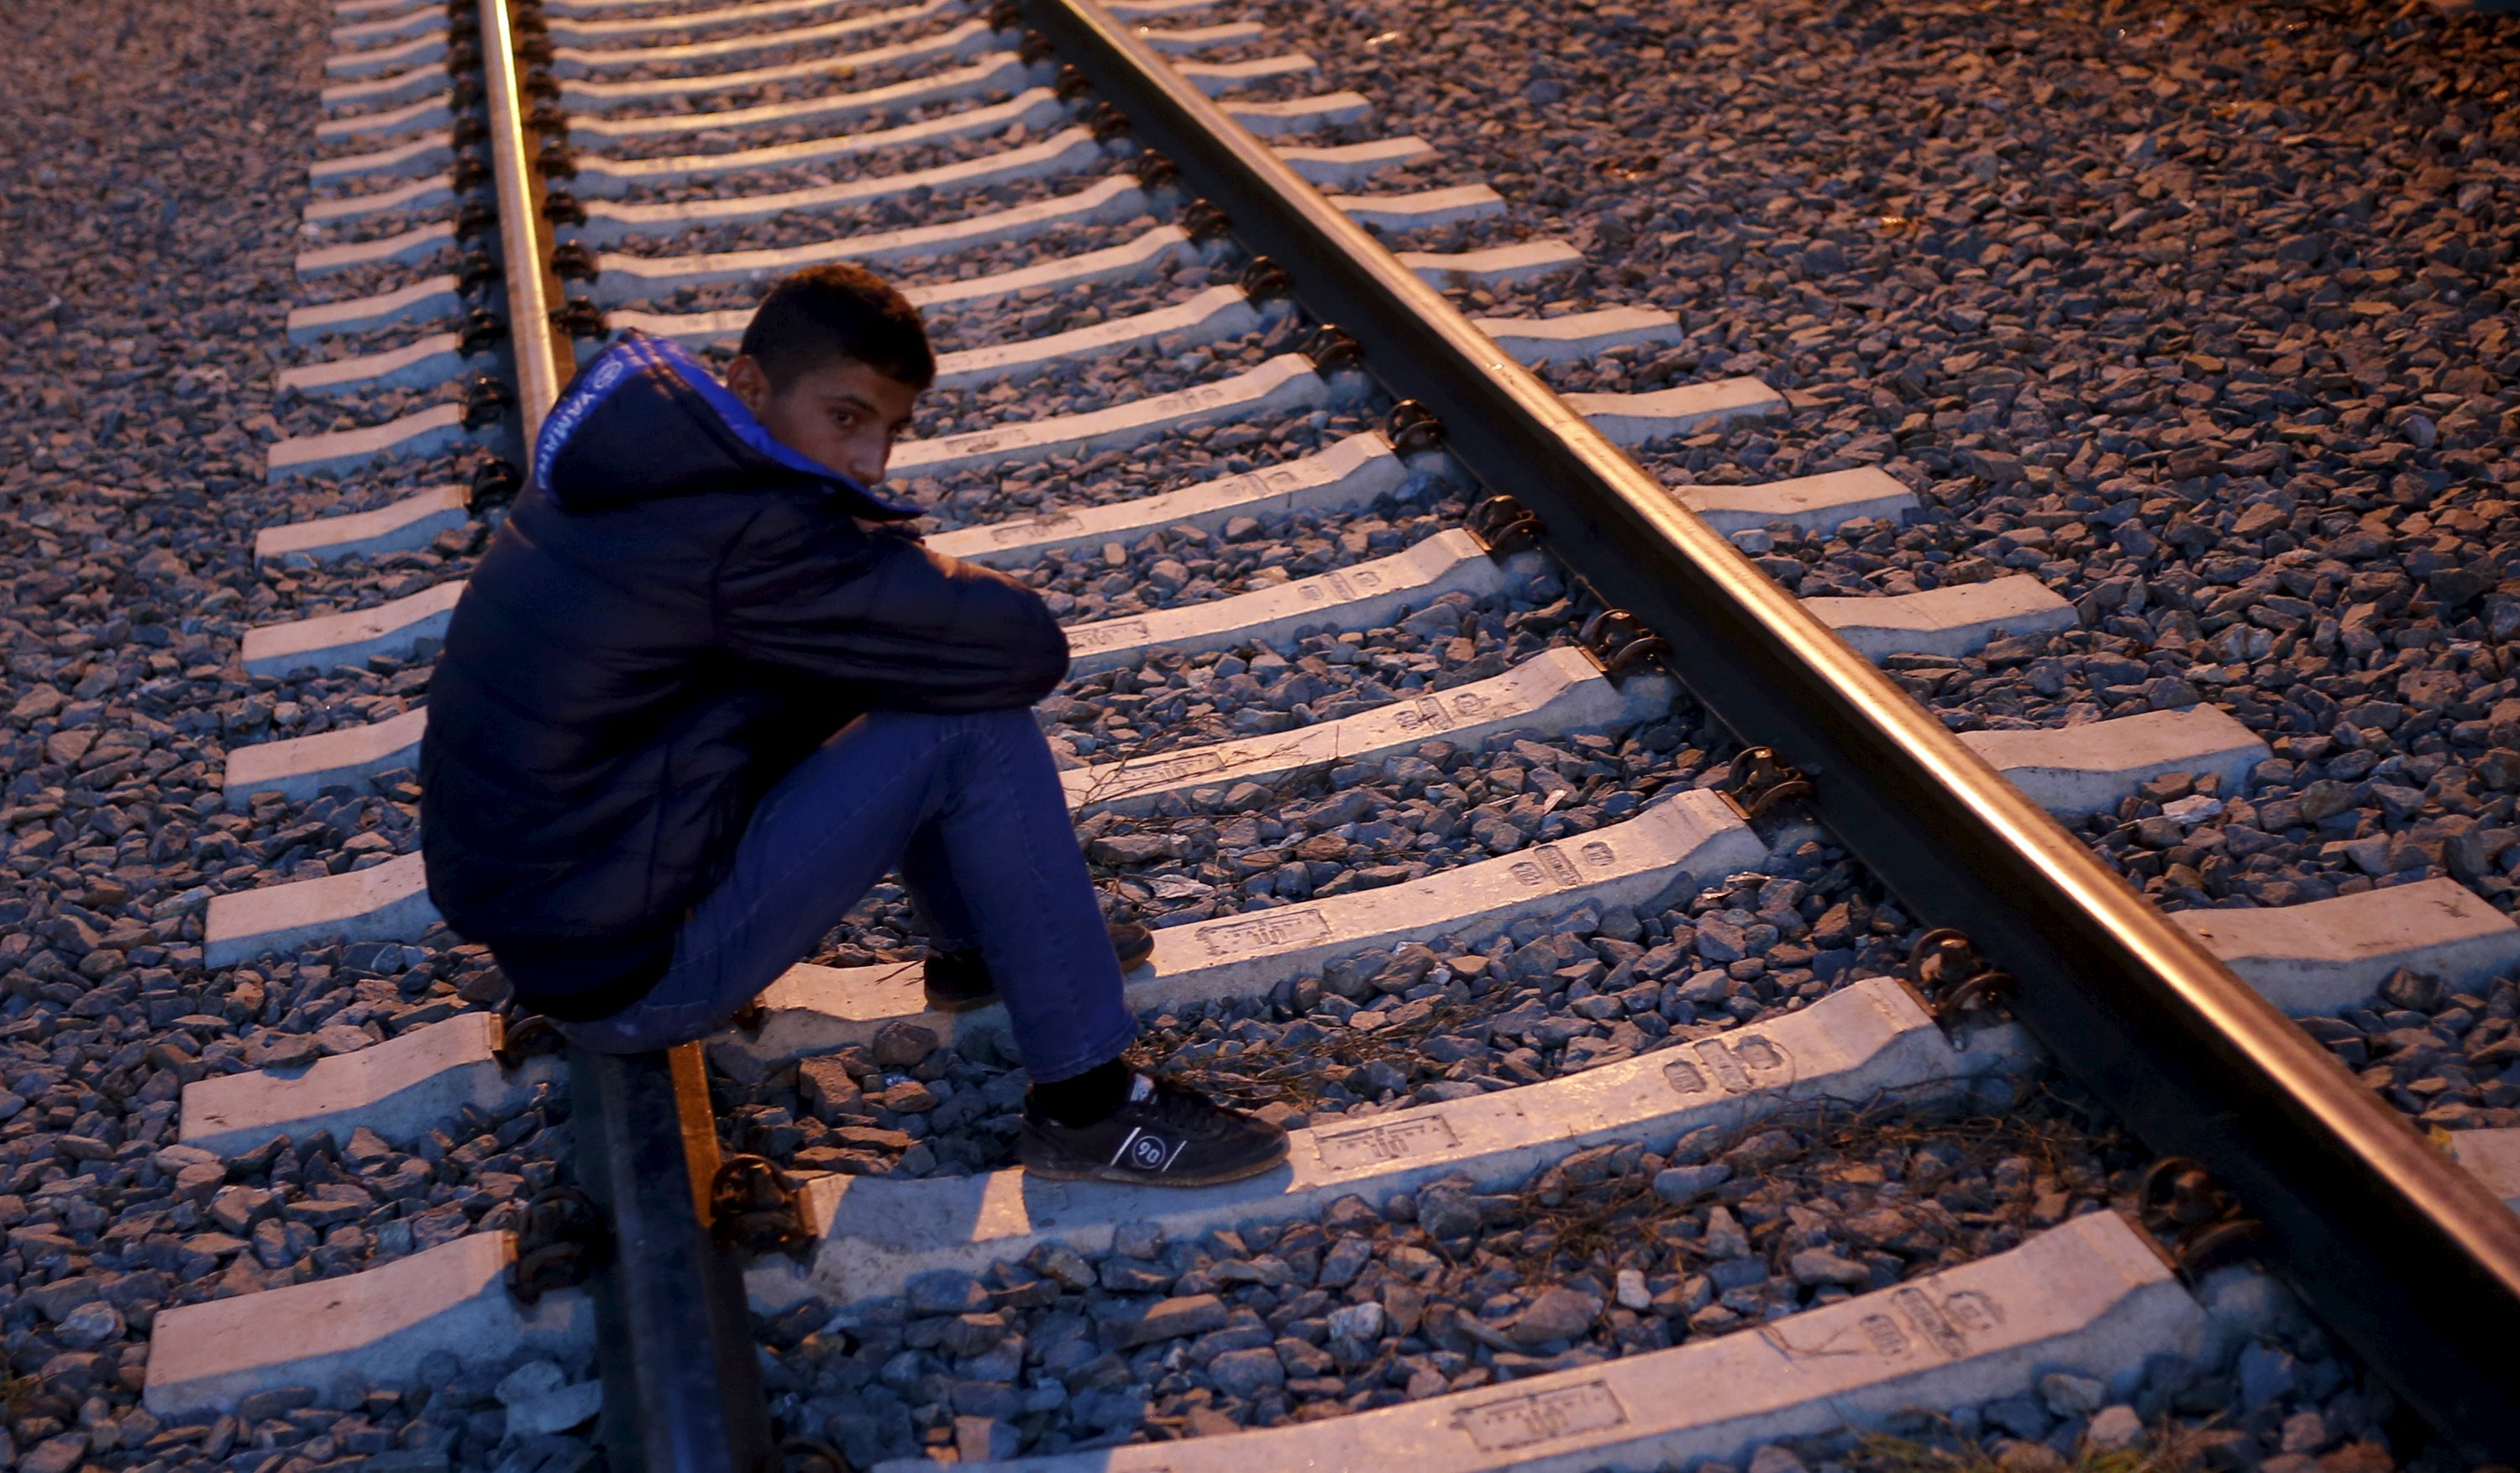 A migrant sits on the tracks as others board a train at the railway station in Tovarnik, Croatia October 2, 2015.  REUTERS/Dado Ruvic